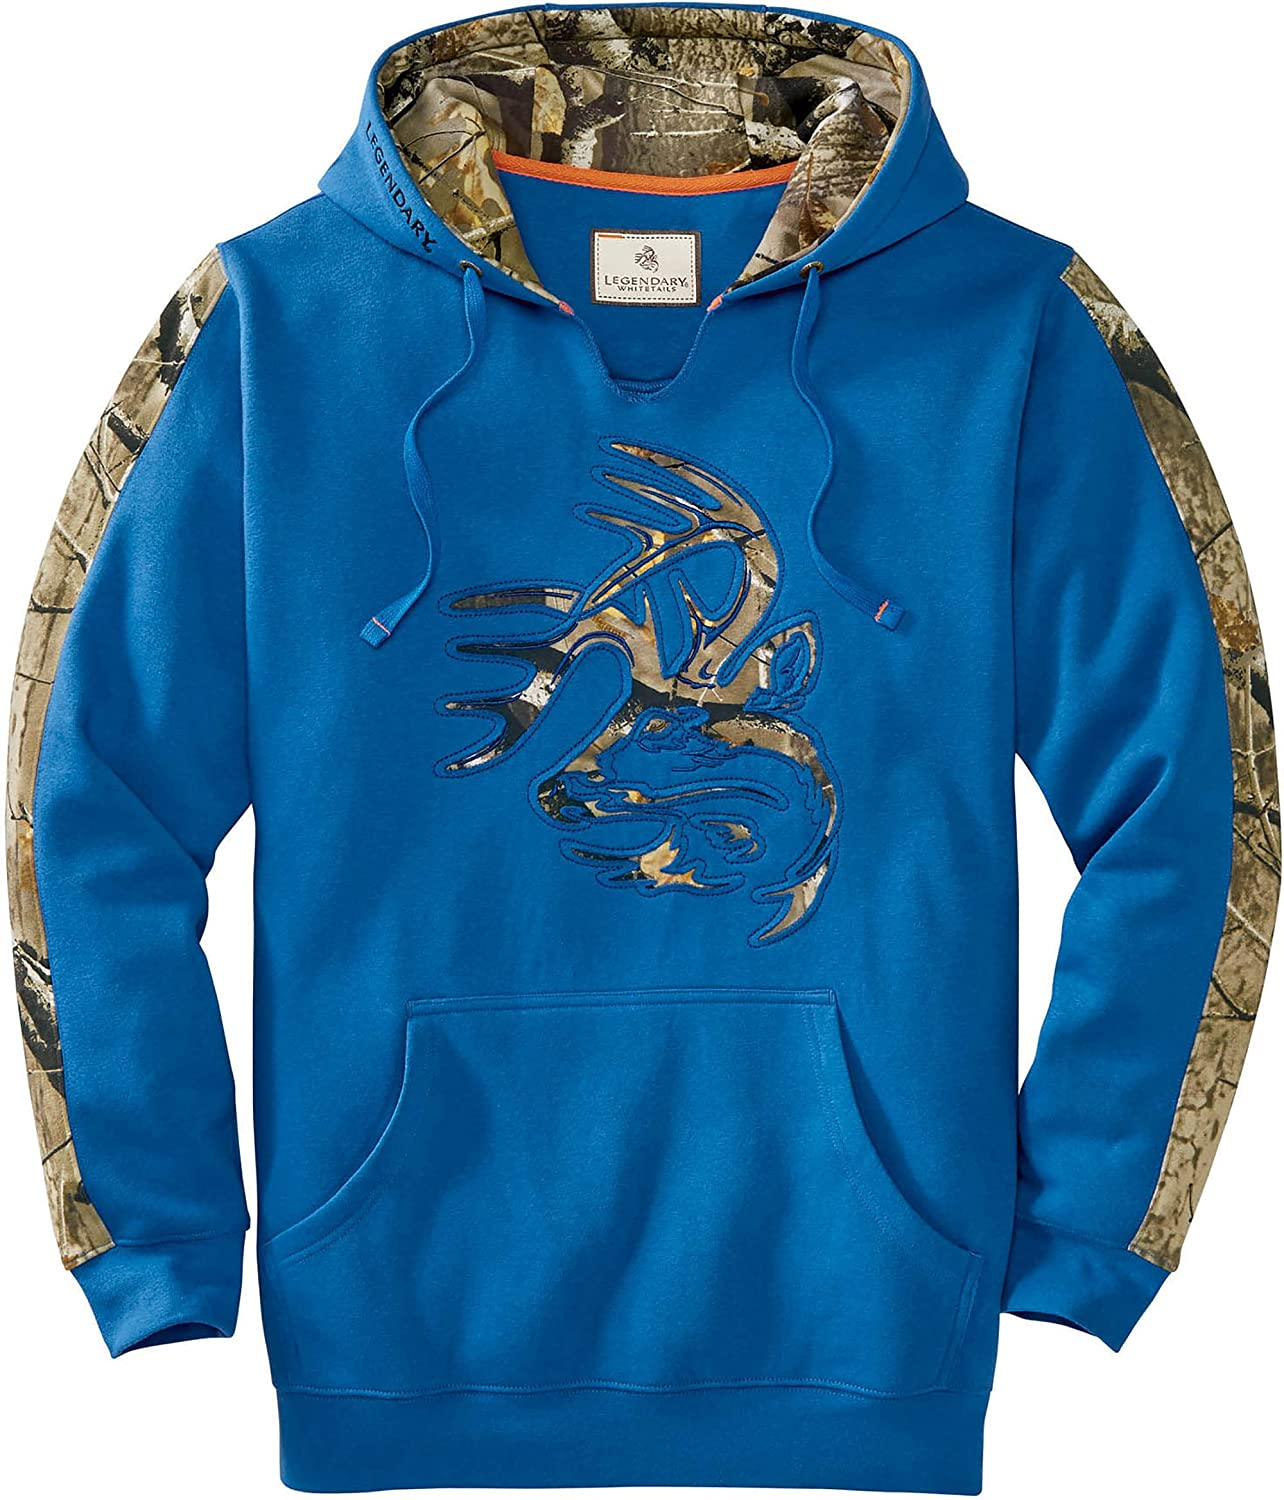 Legendary Whitetails Men's Outfitter Camo Clearance SALE! Limited time! Hoodie 5% OFF